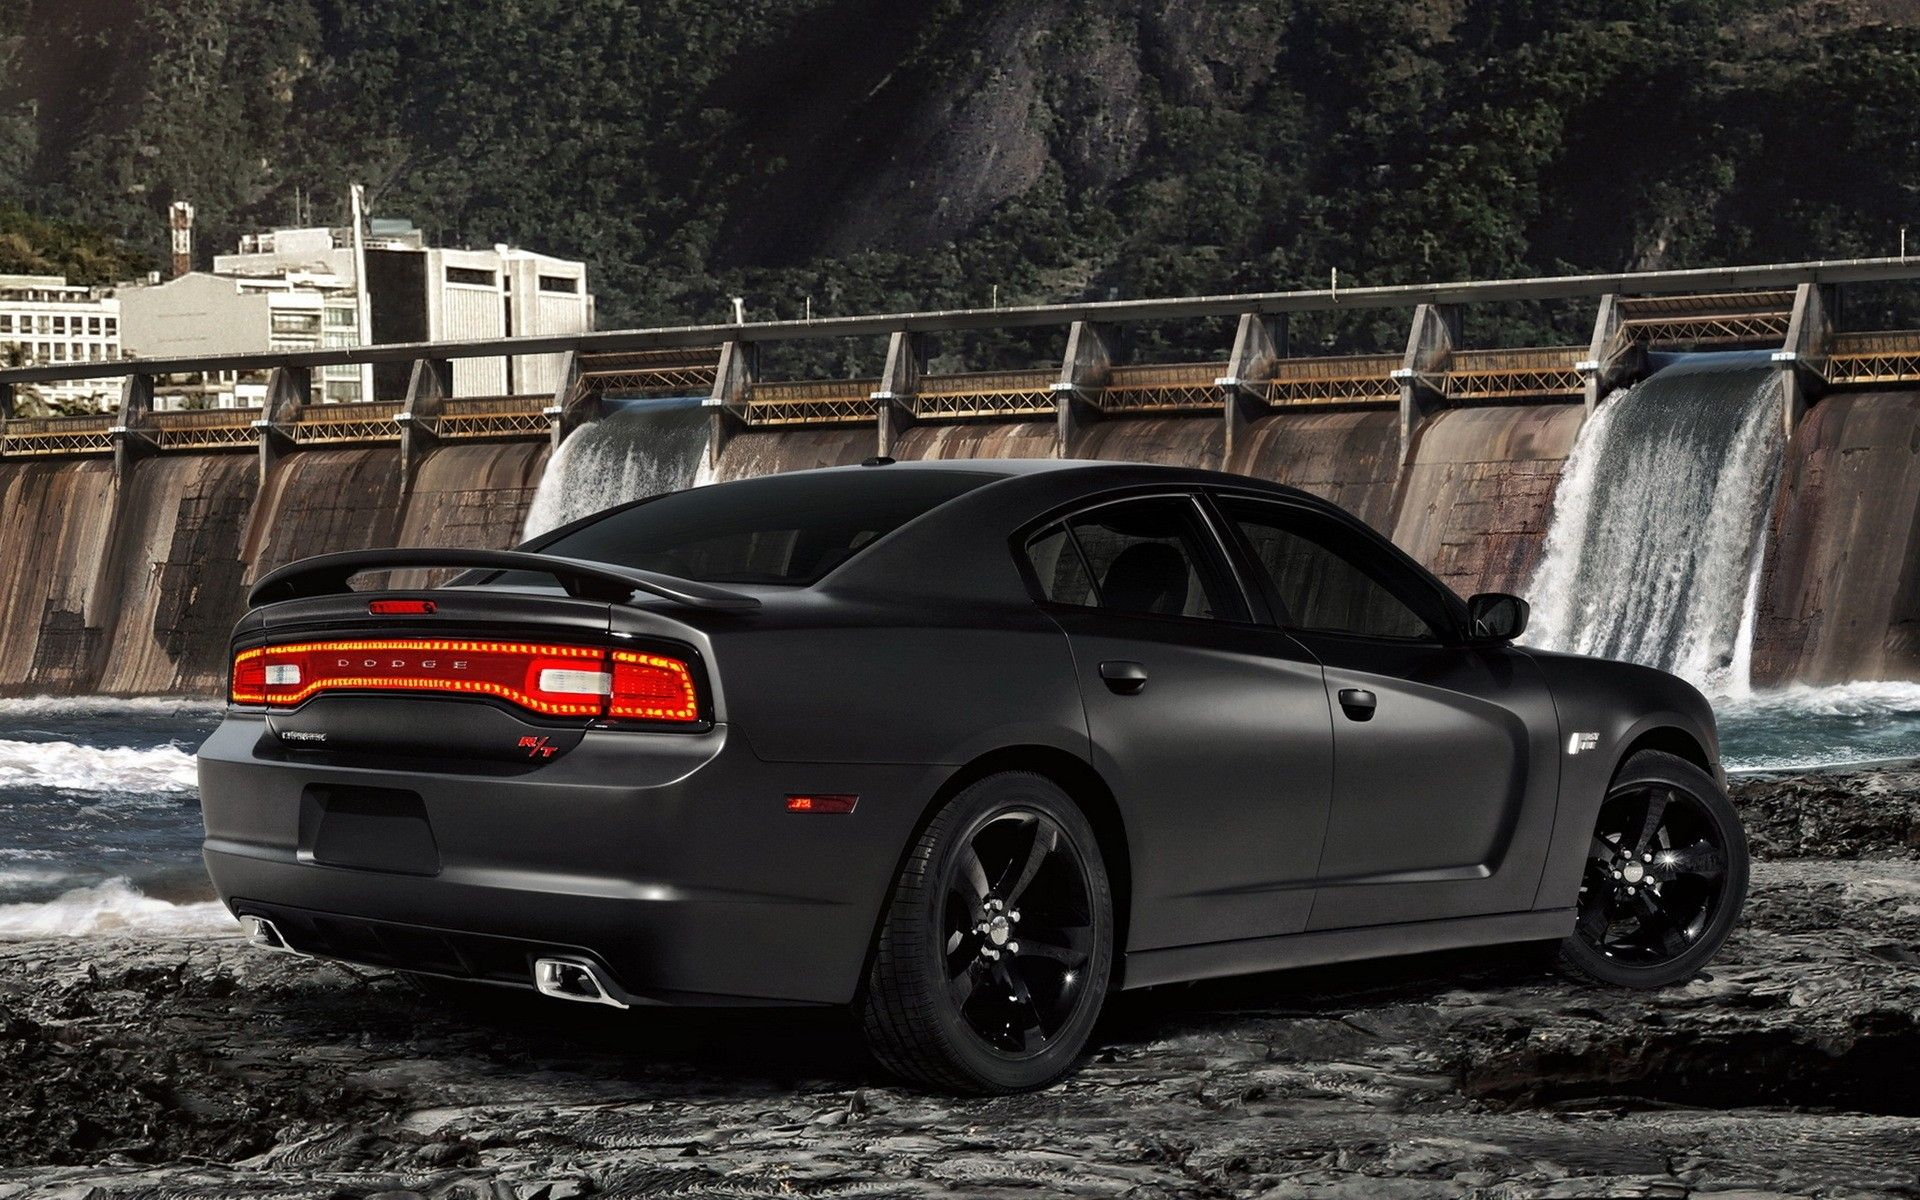 charger rt matte black cars pinterest charger rt dodge charger and mopar. Black Bedroom Furniture Sets. Home Design Ideas